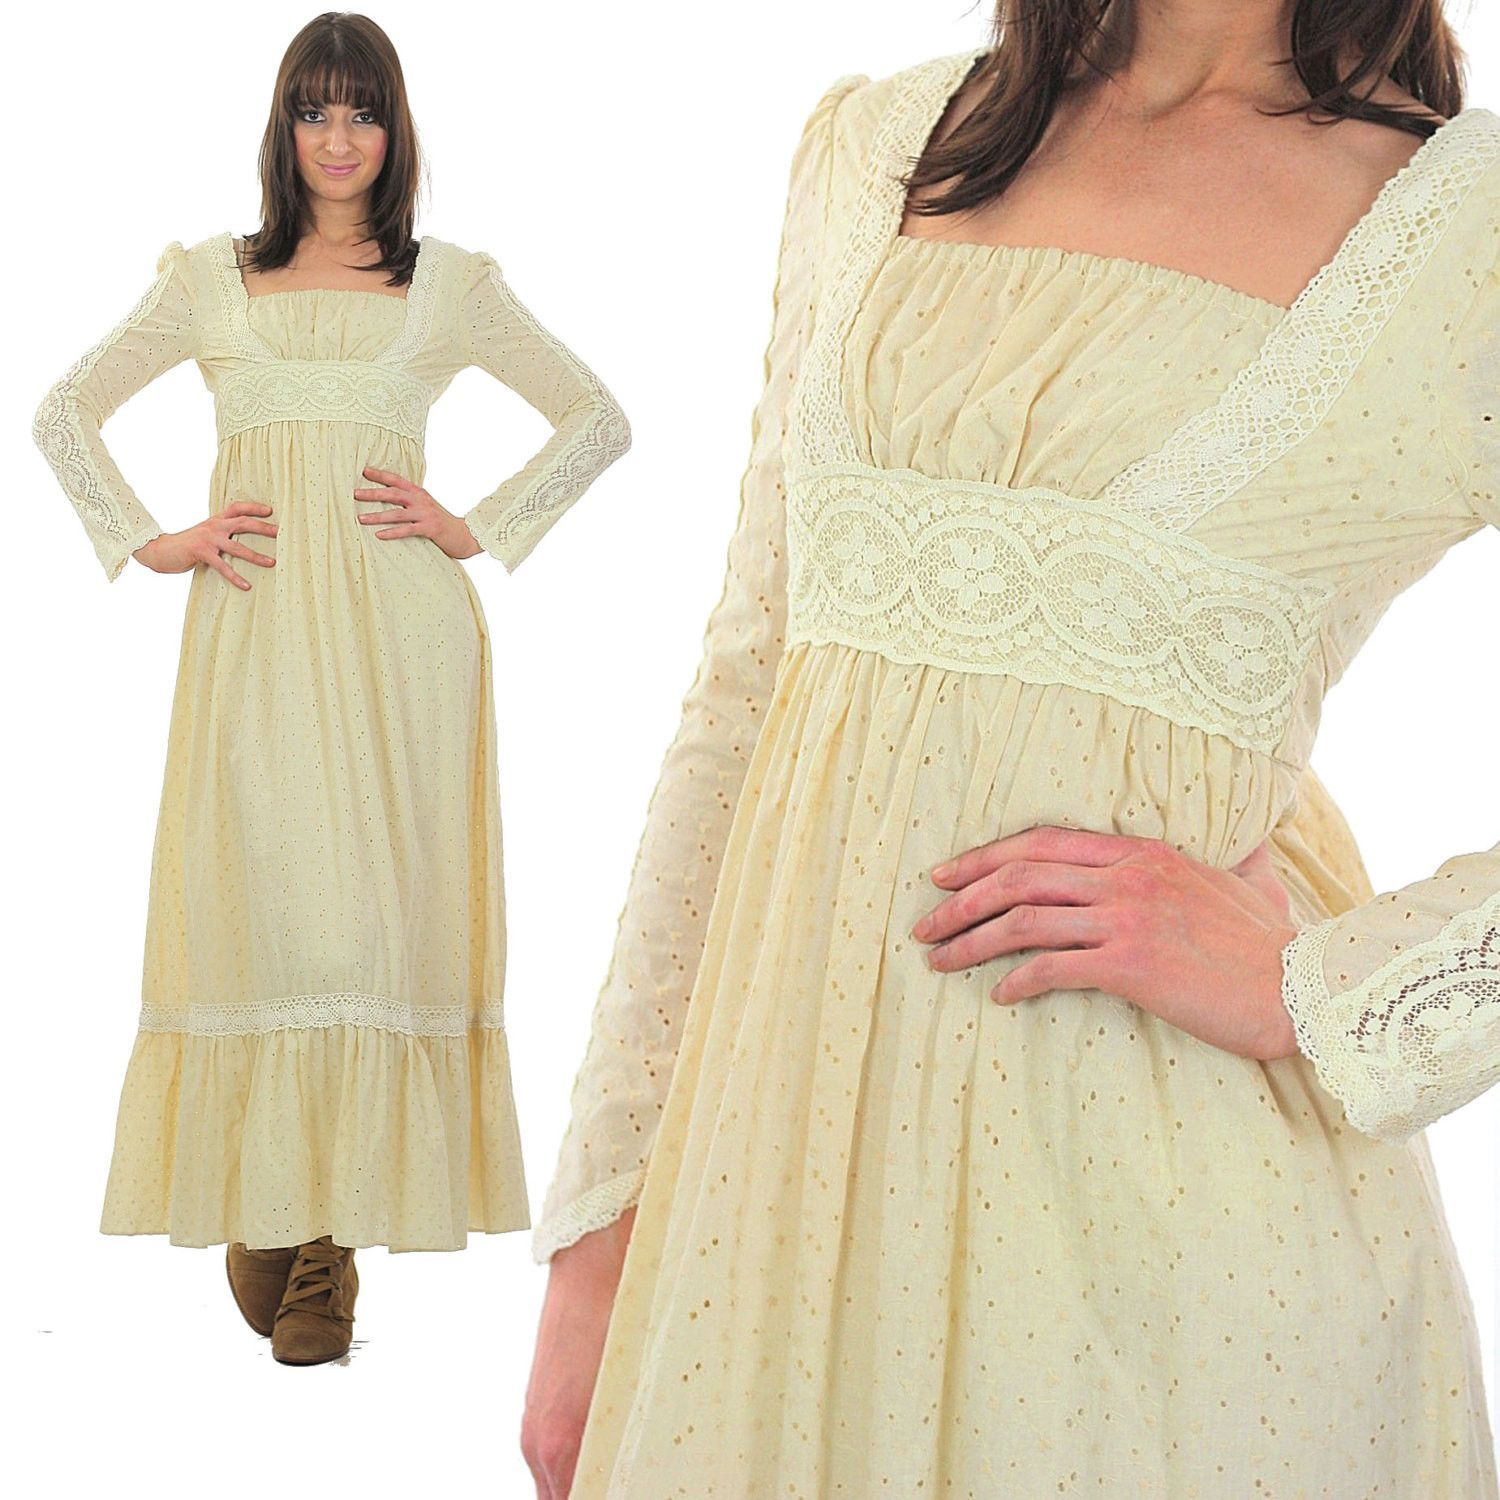 Vintage s gunne sax dress boho hippie lace party maxi dress xs